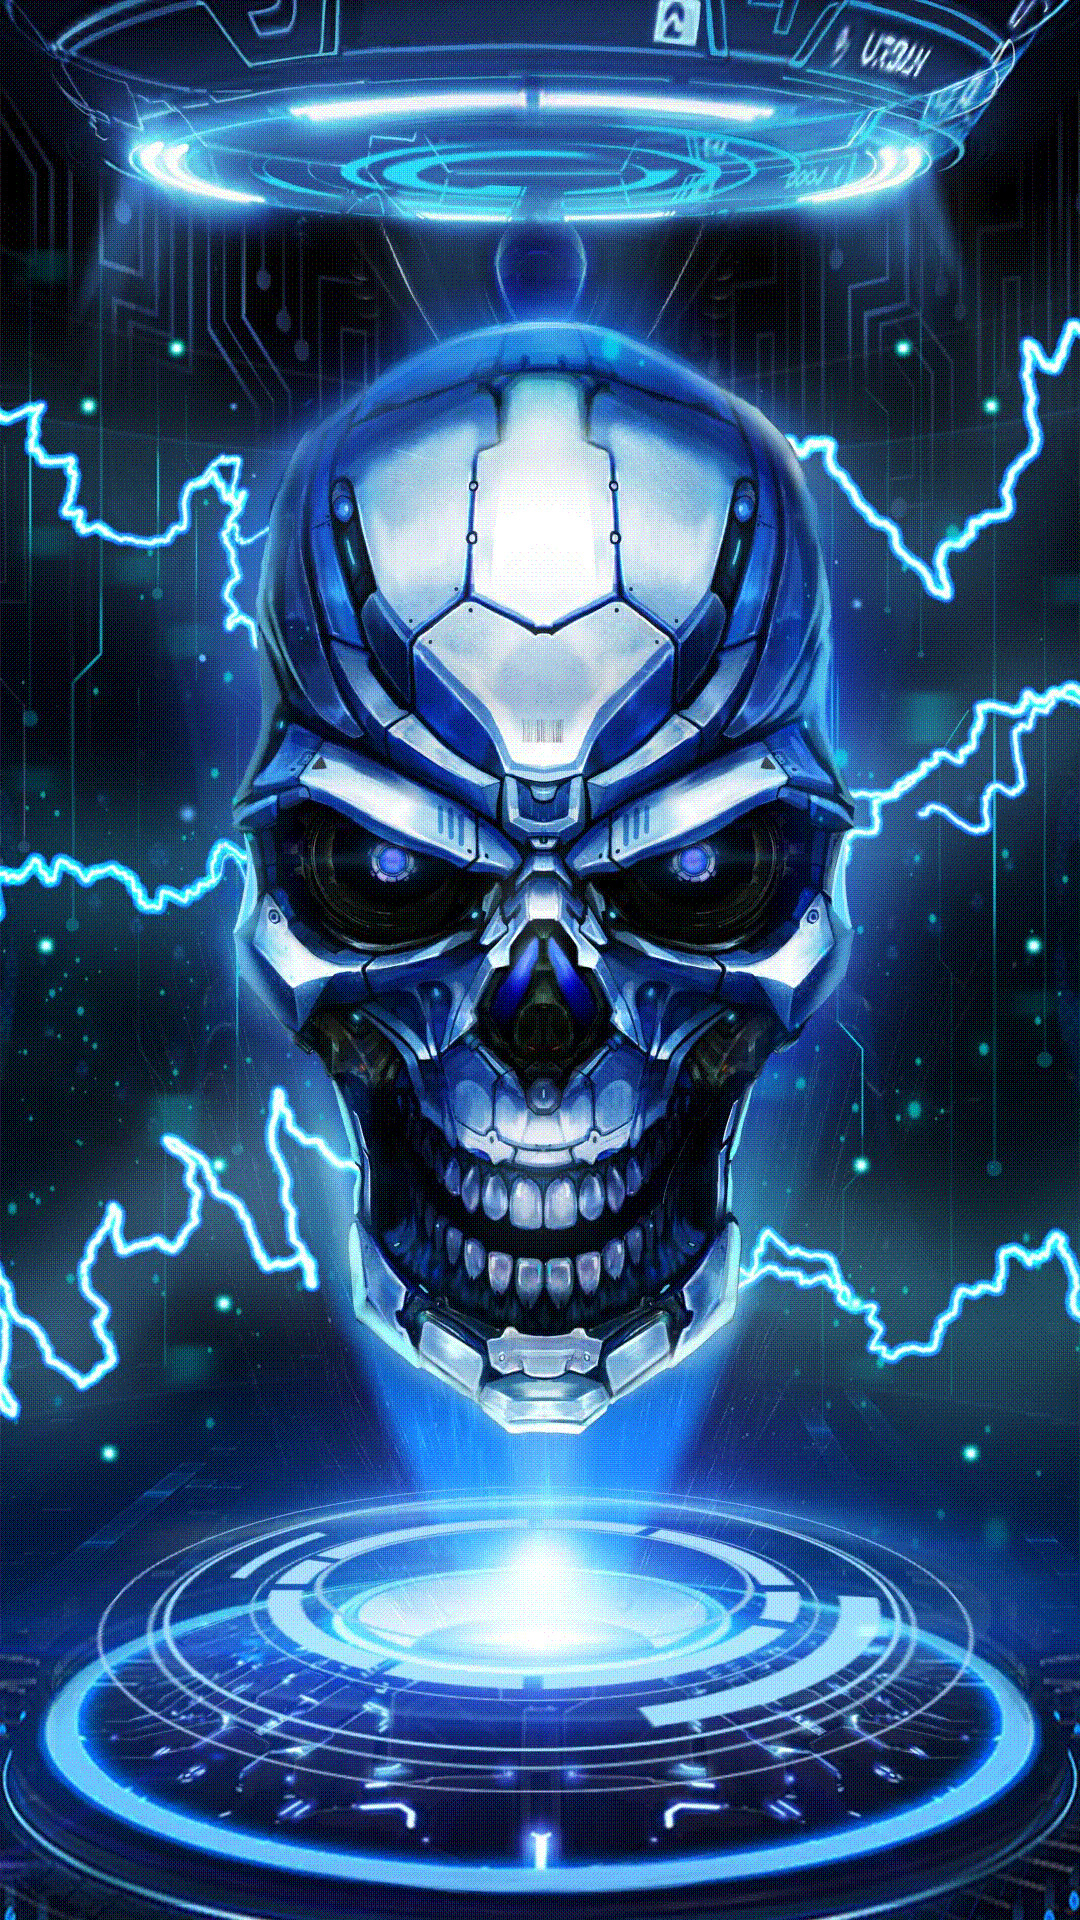 Dallas Cowboys Live Wallpaper Iphone Fire Skull Wallpapers 62 Pictures